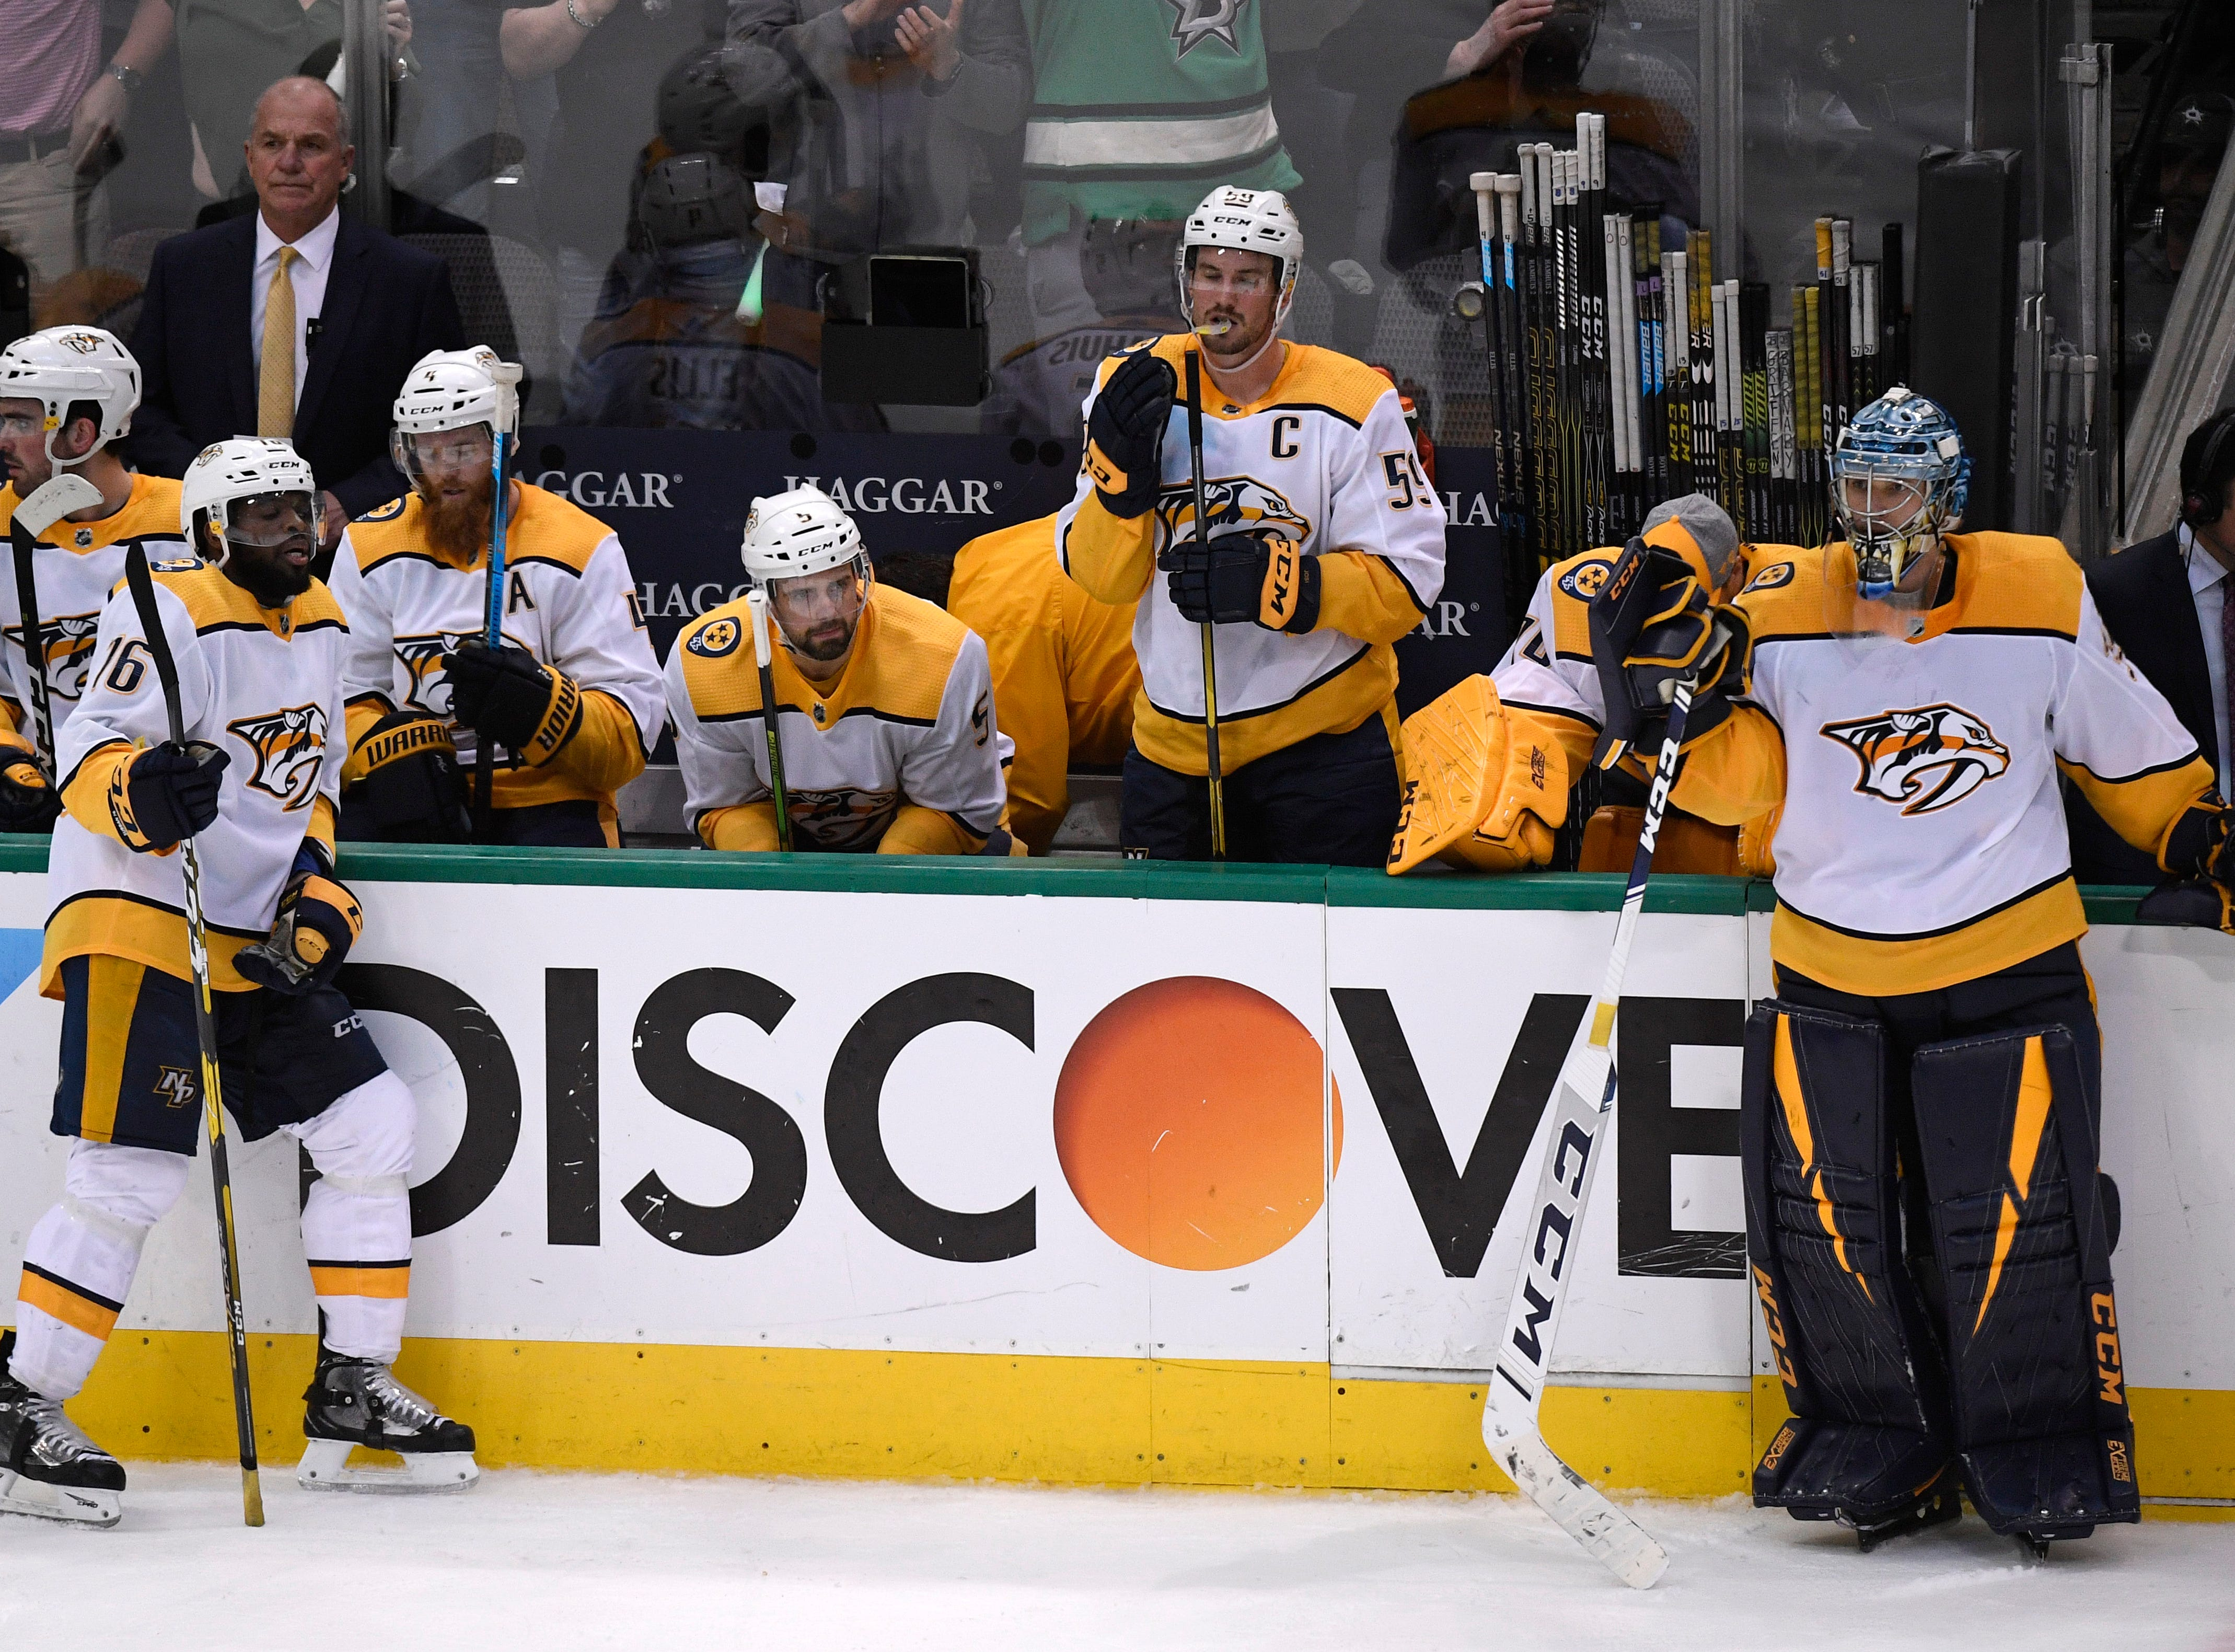 The Predators react to their 2-1 overtime loss to the Dallas Stars in the divisional semifinal game at the American Airlines Center in Dallas, Texas, Monday, April 22, 2019.